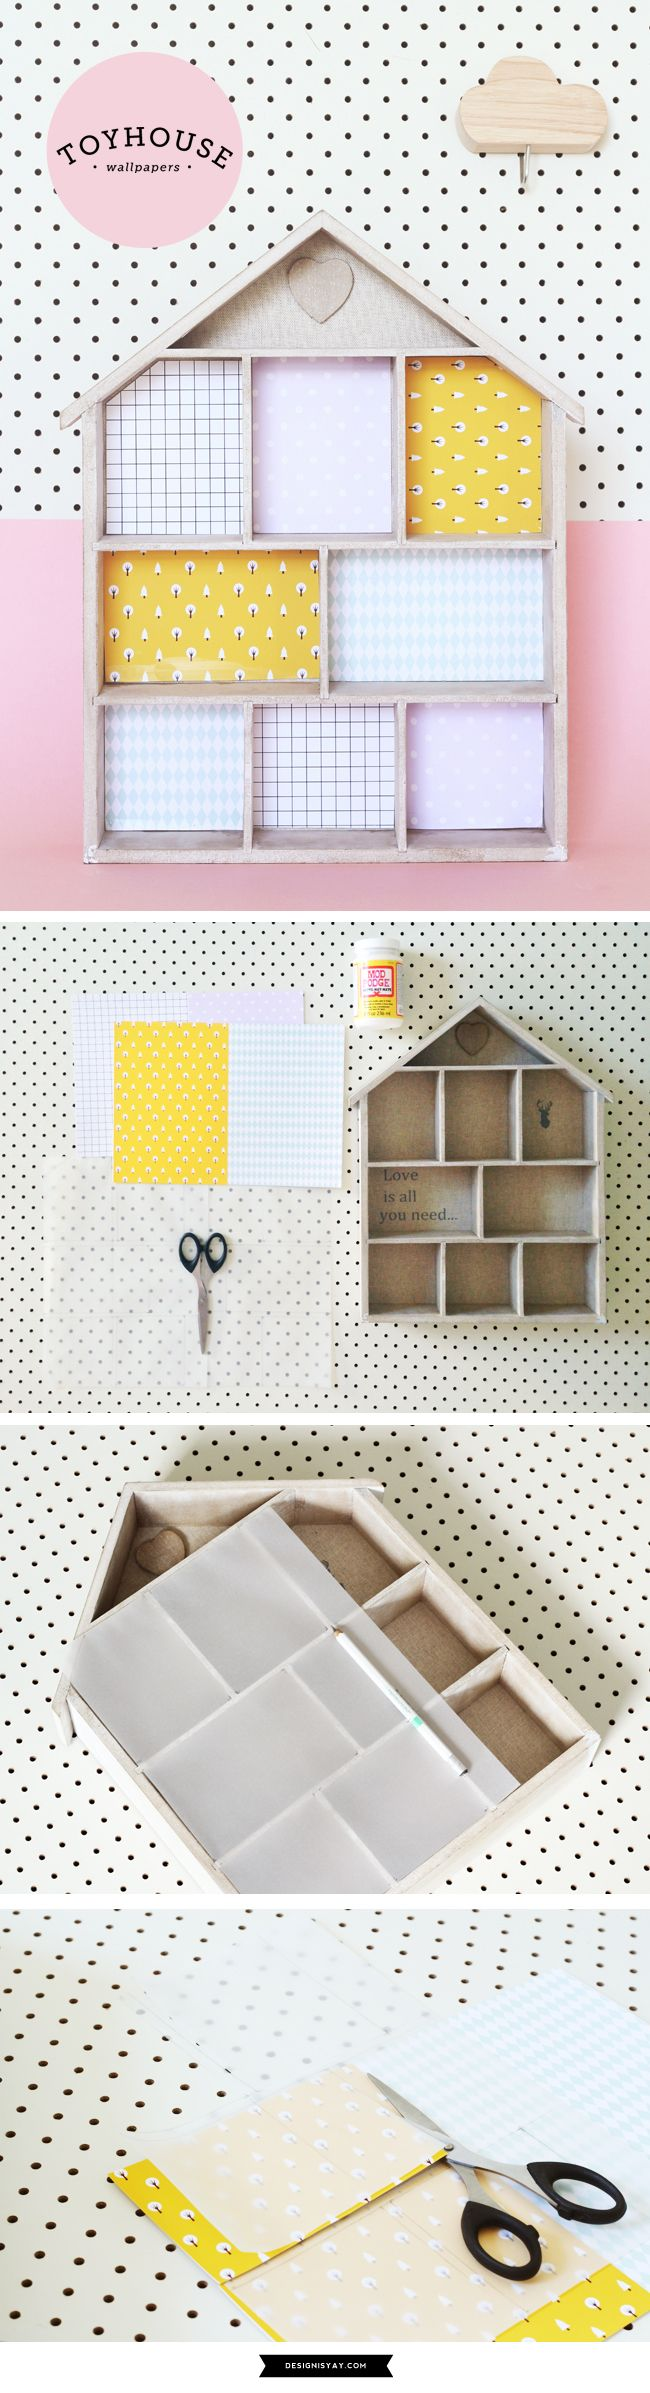 Kmart Toy House tweak: Wallpaper the toy house (with free pattern printable) | DESIGN IS YAY